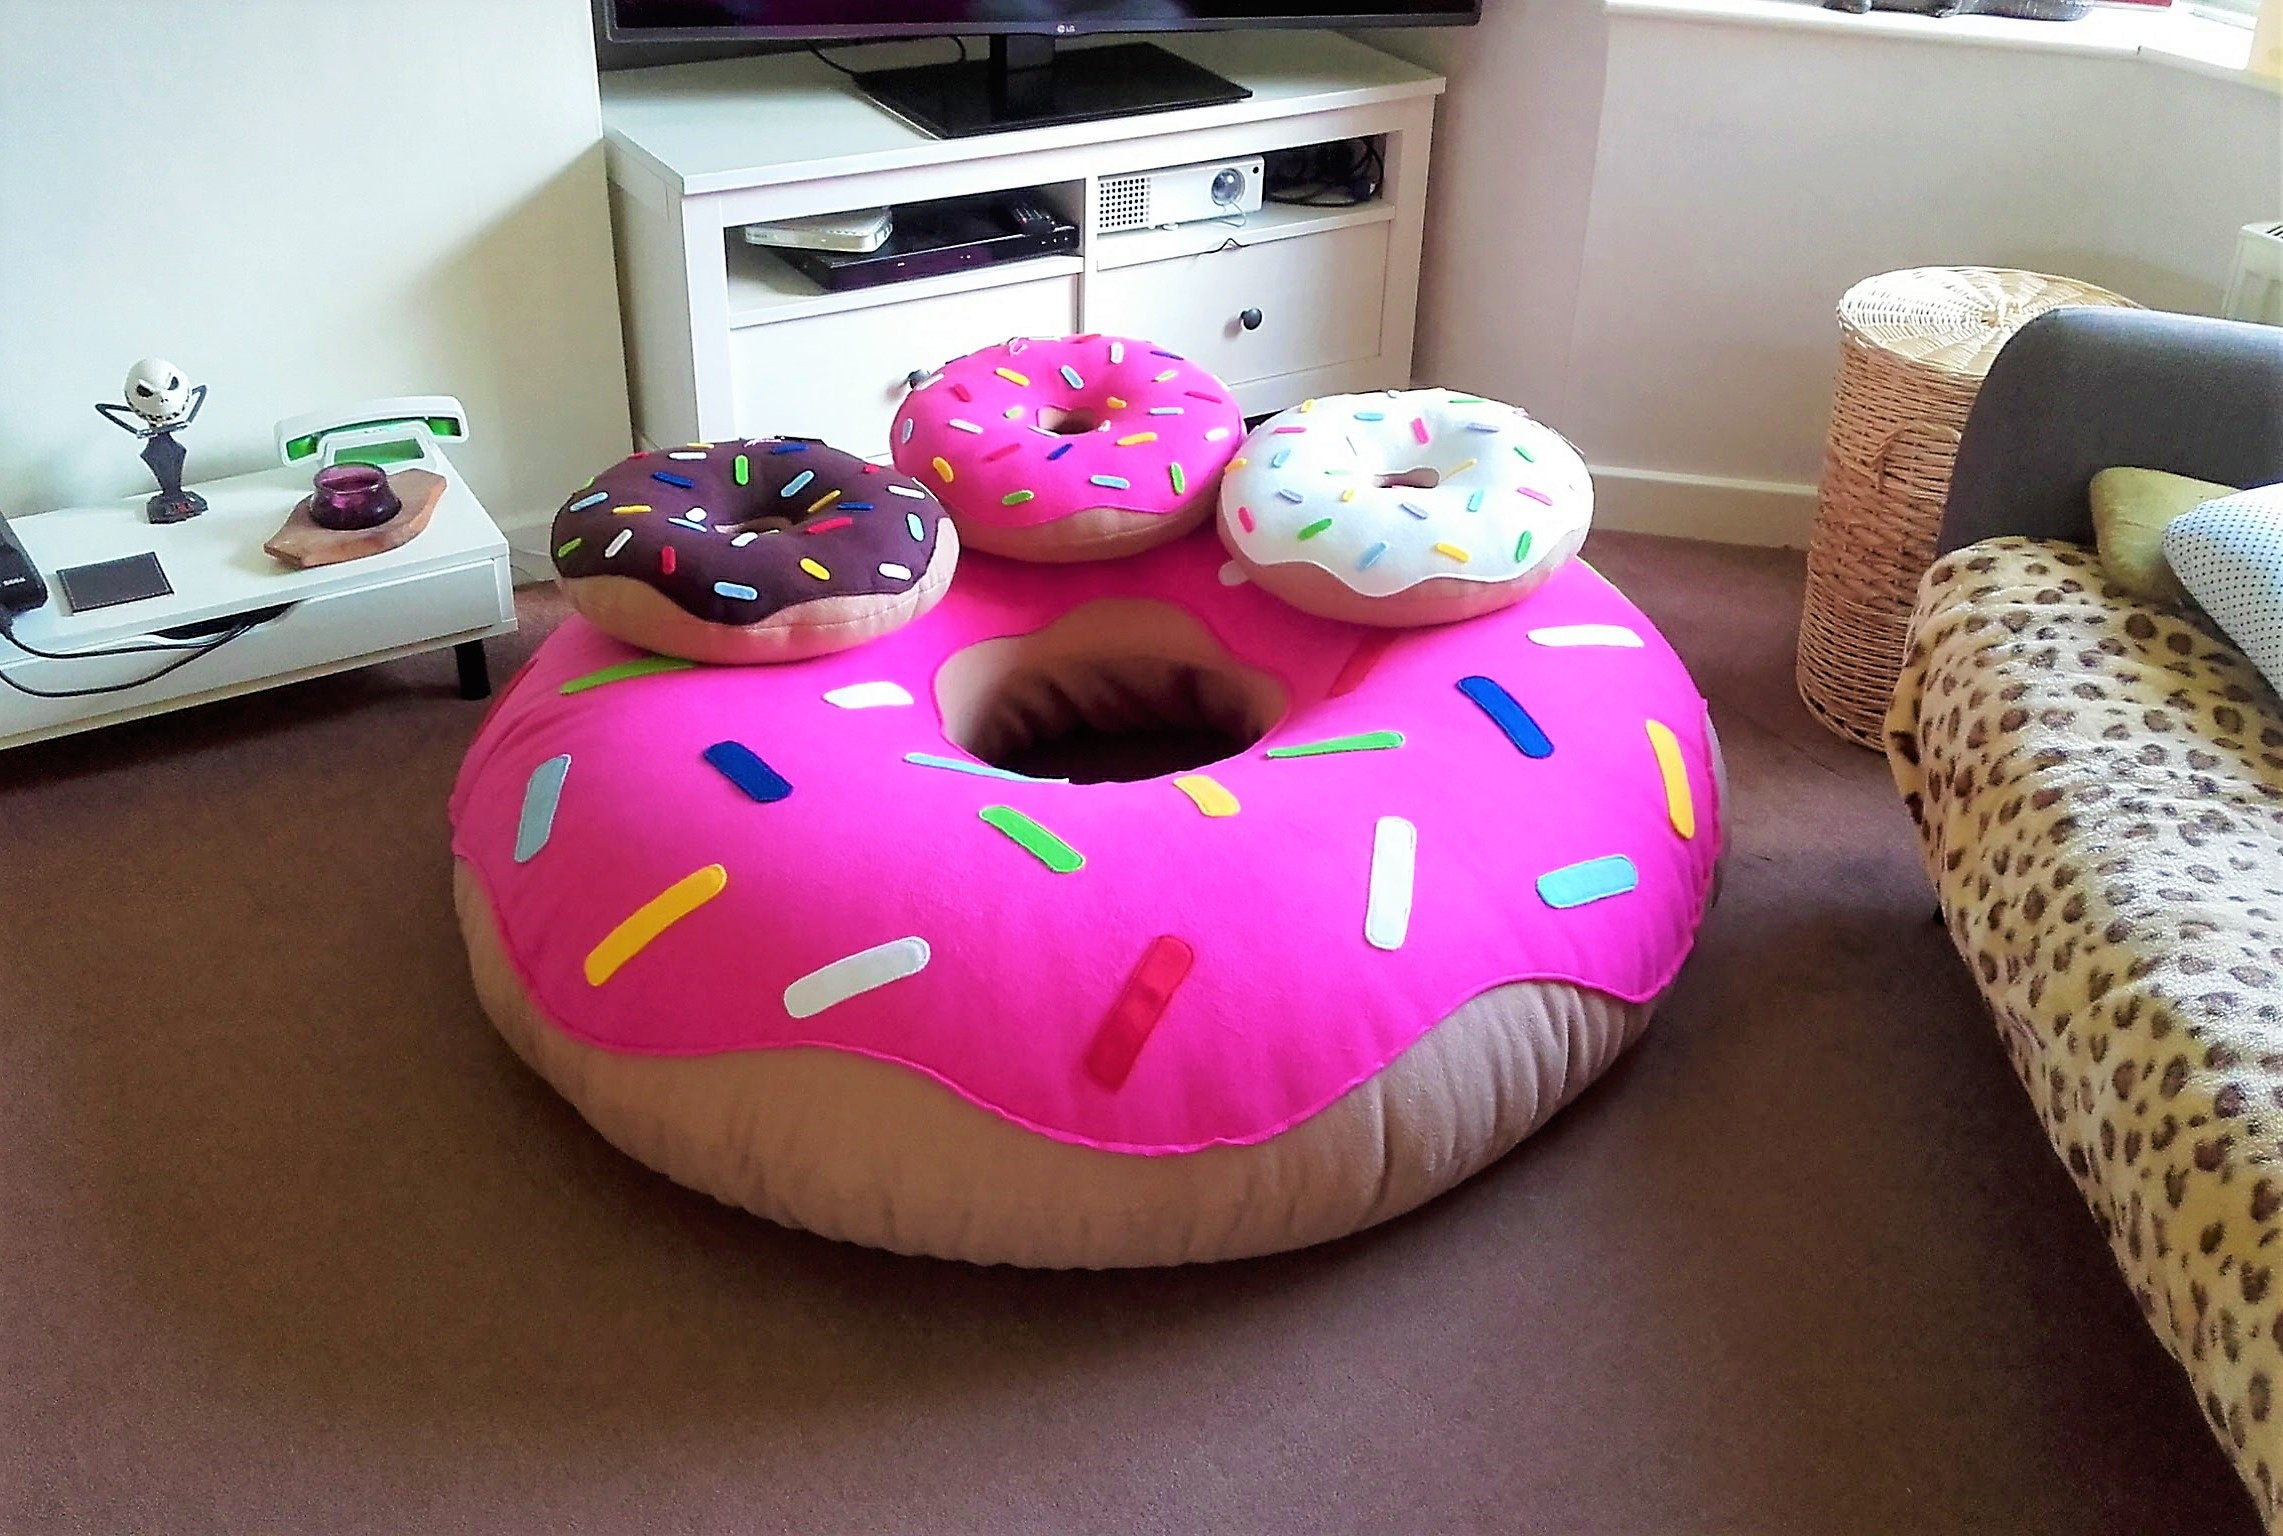 polaire g ant donuts en xtra grande et grande fait la. Black Bedroom Furniture Sets. Home Design Ideas